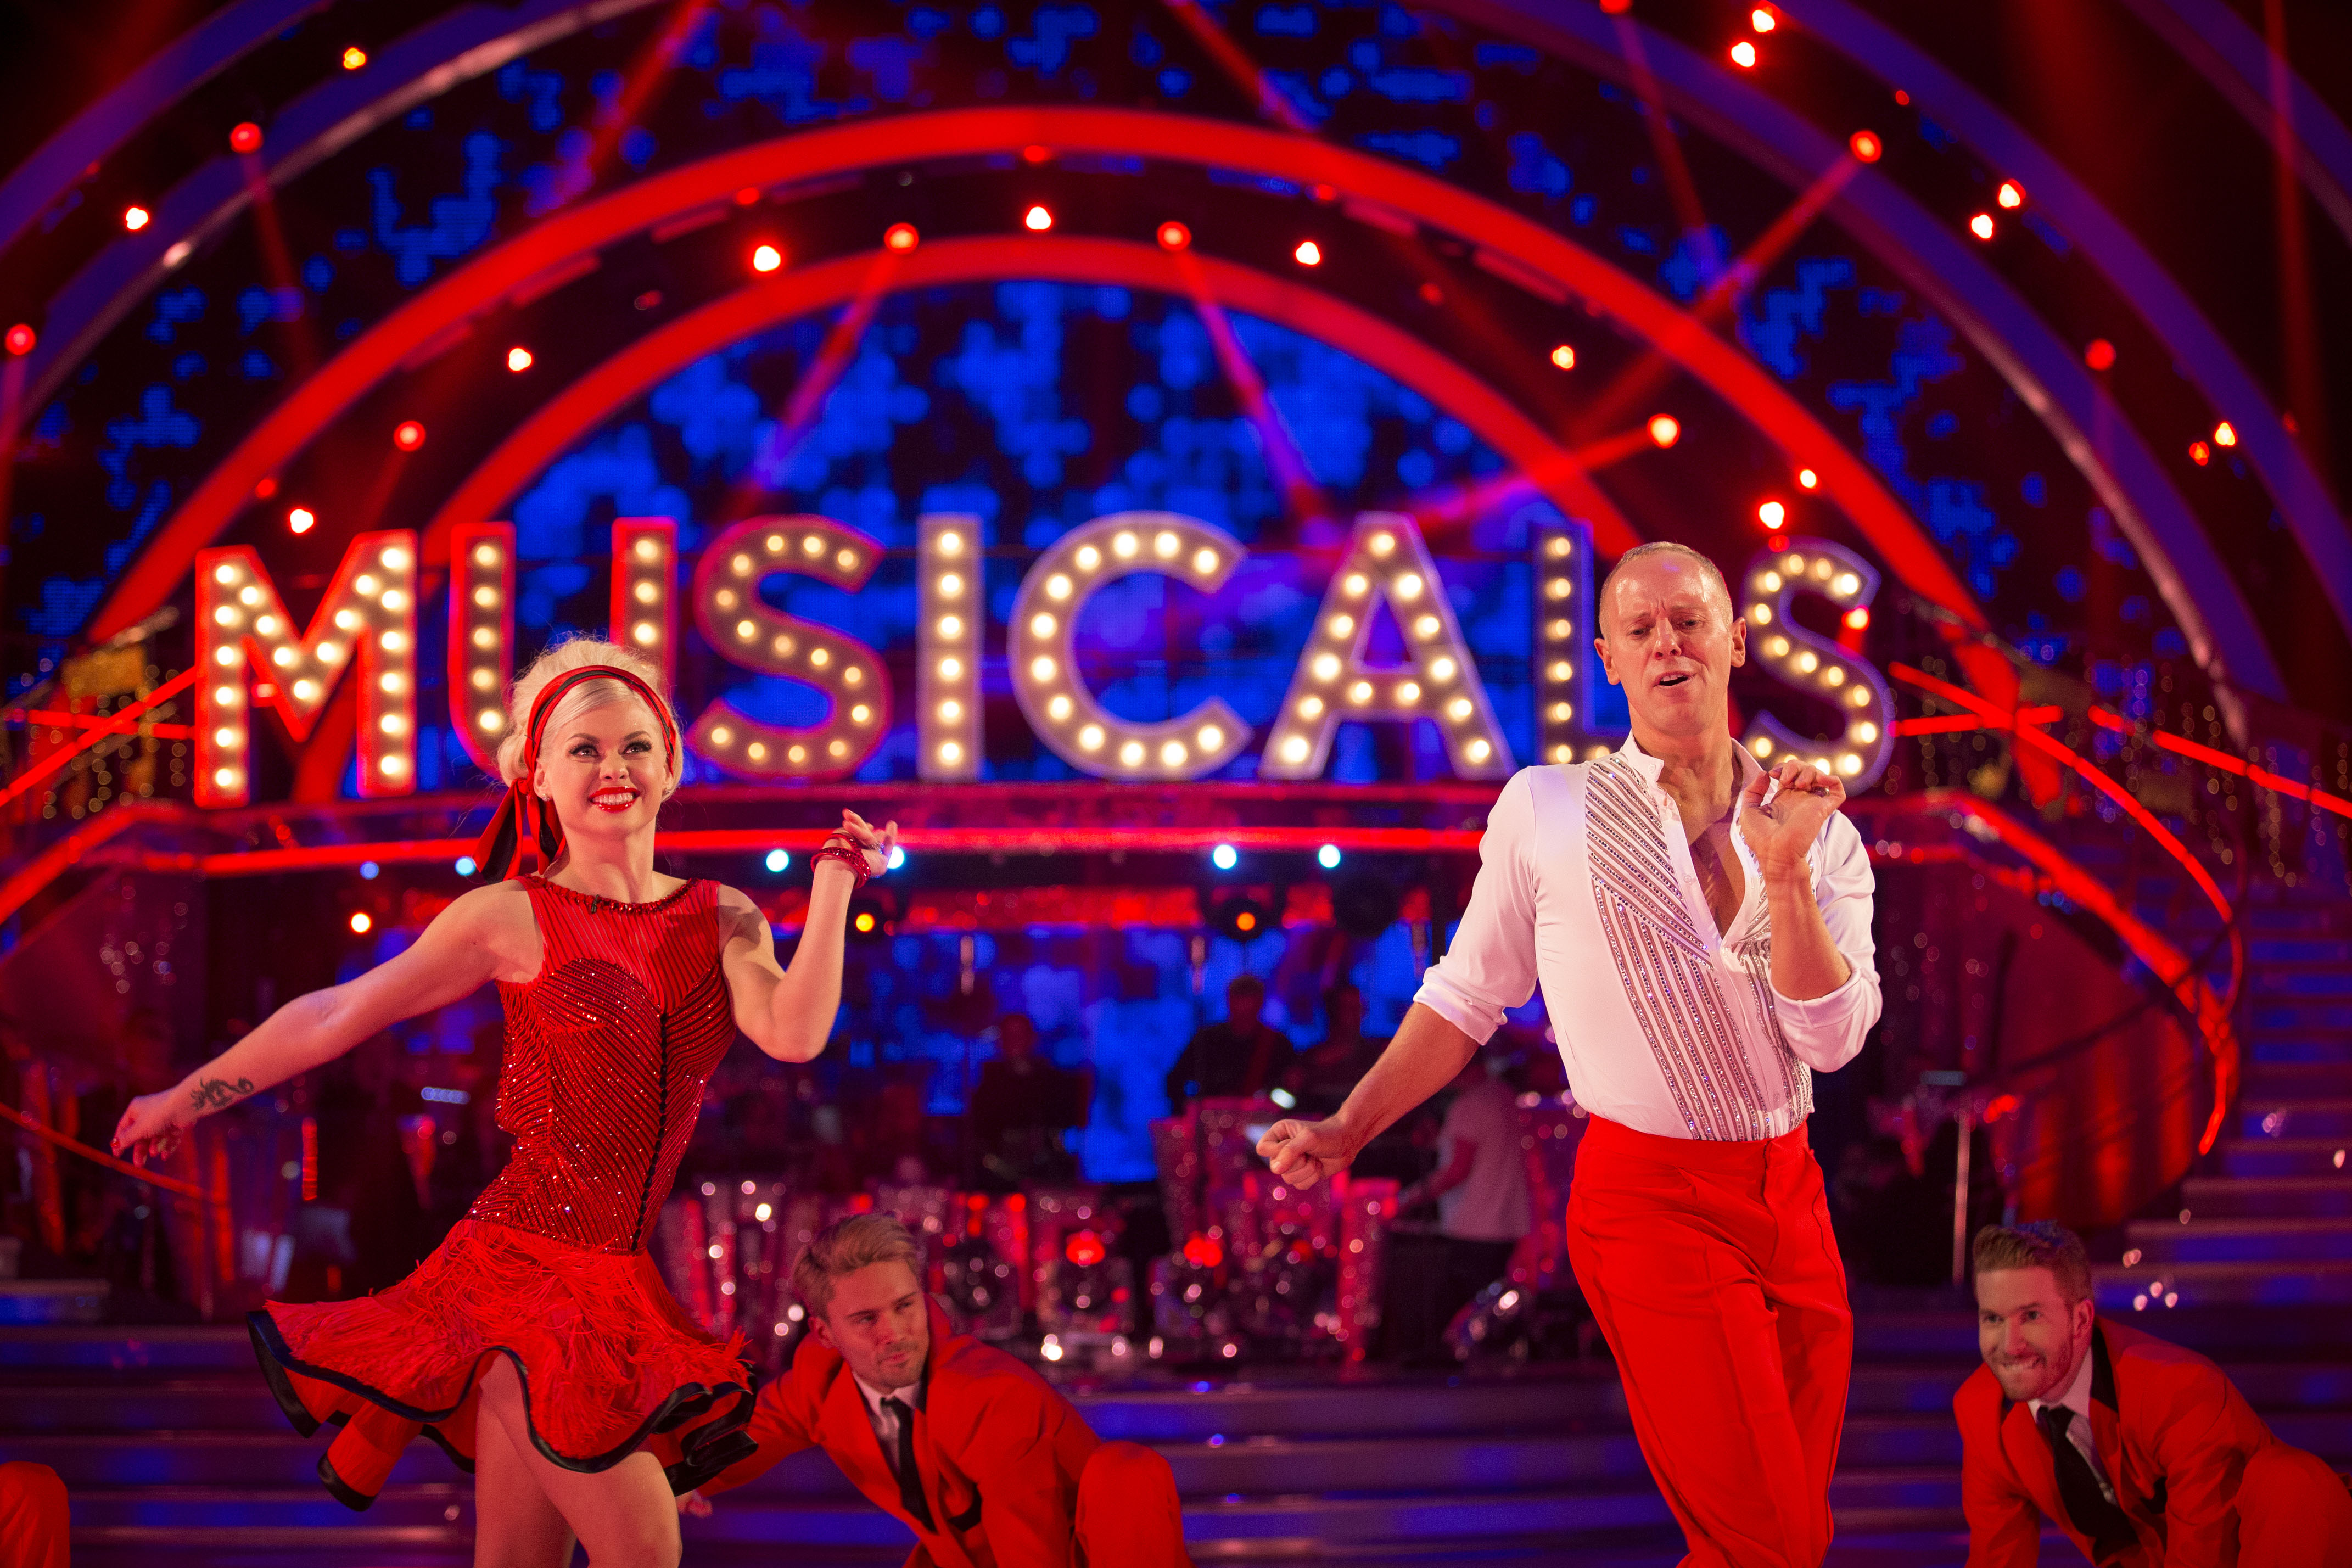 Judge Rinder Strictly Come Dancing